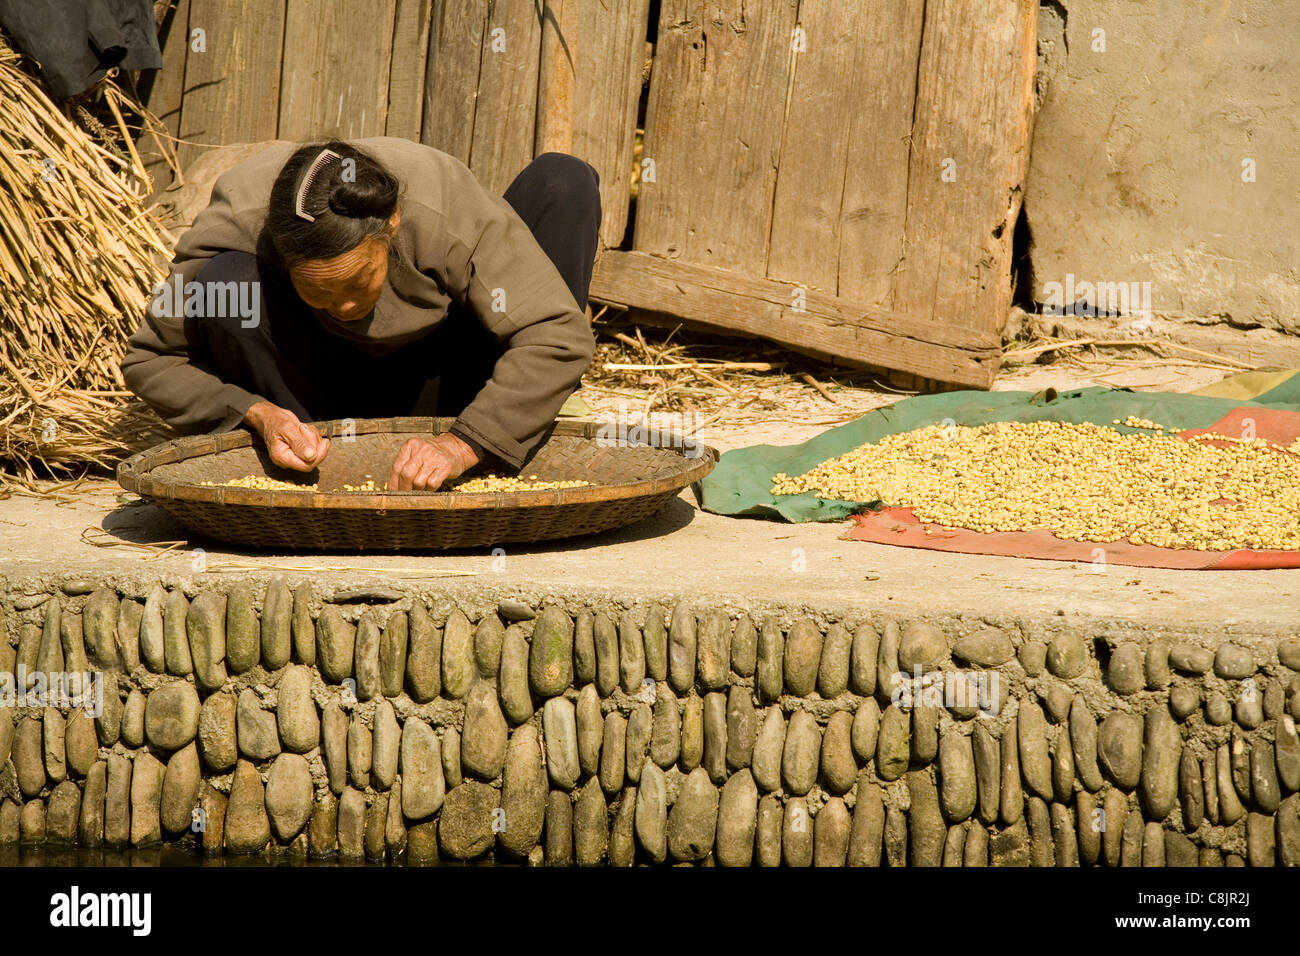 Picking up dirt from a tray of rice grains, rice, cleaning, work, working , couching, Dong, Miao, ethnic, minority, - Stock Image